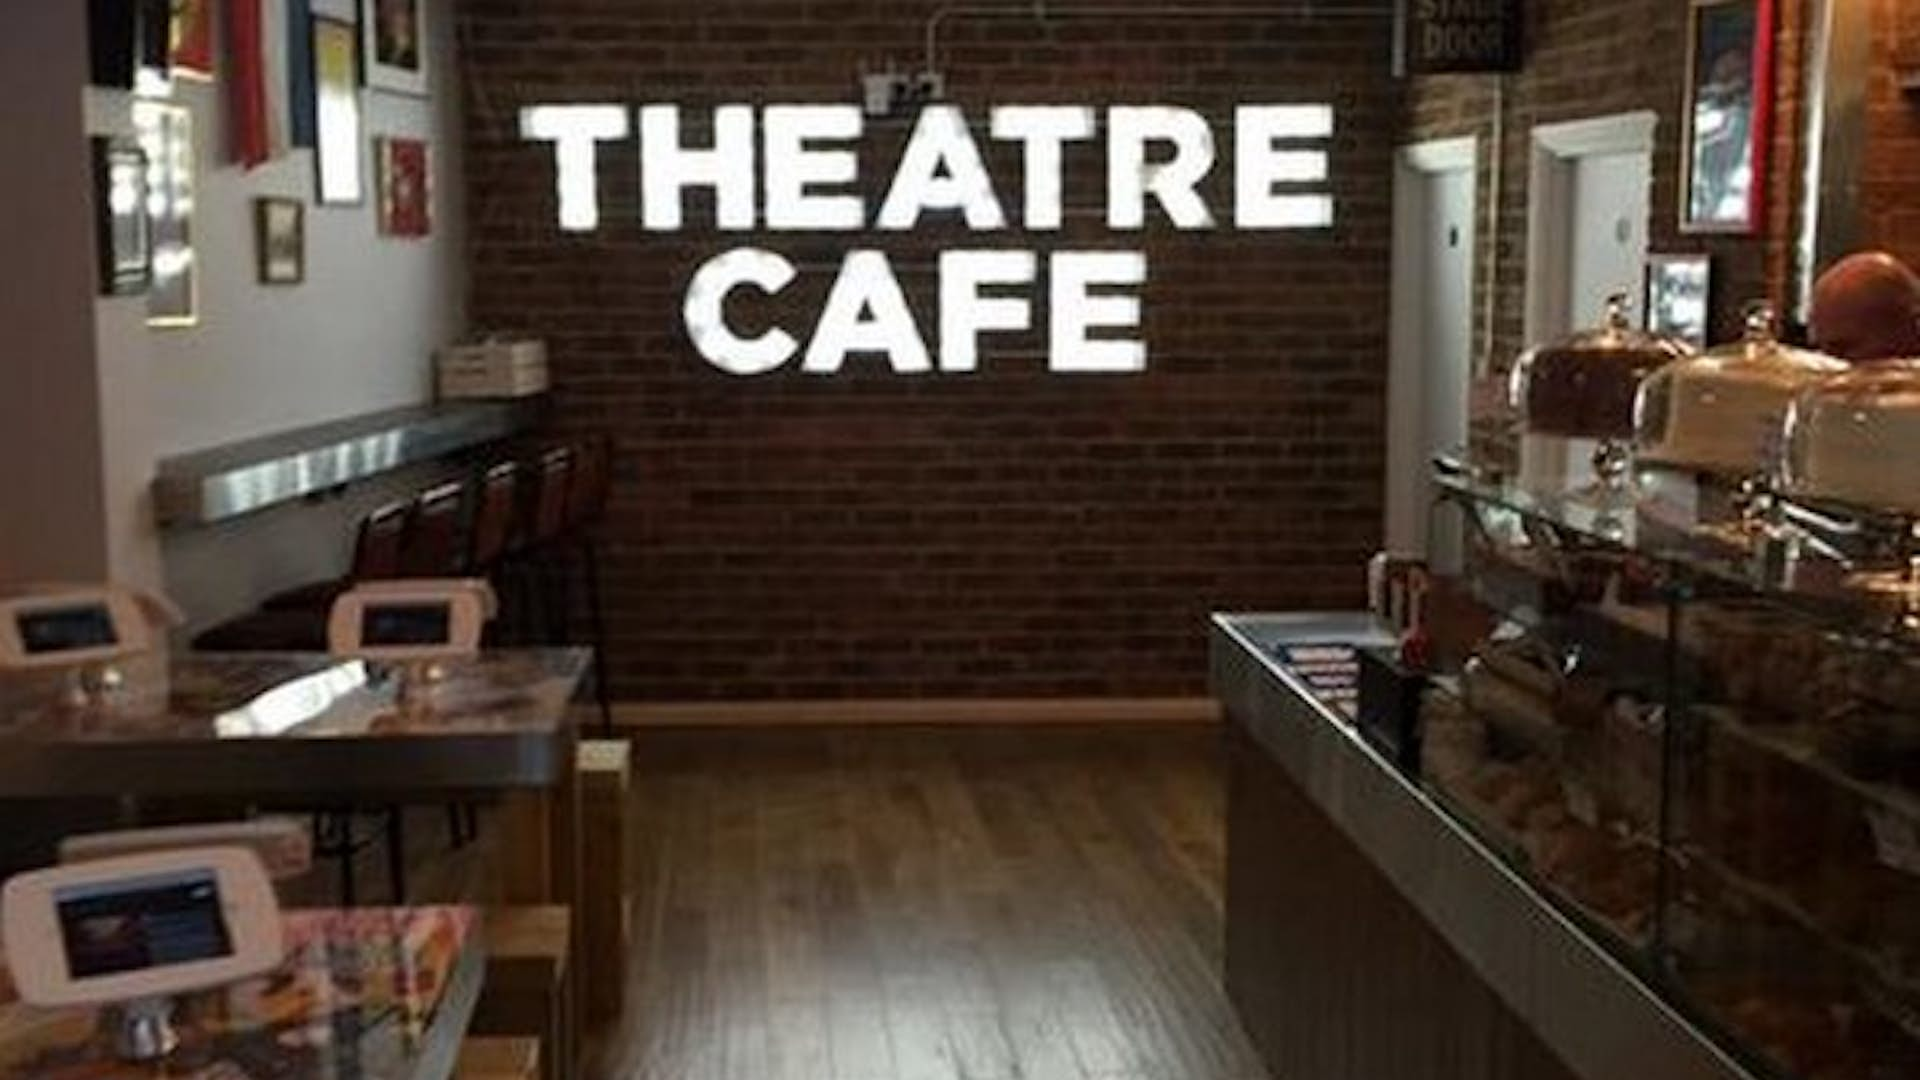 The Theatre Cafe Arts The Theatre Cafe